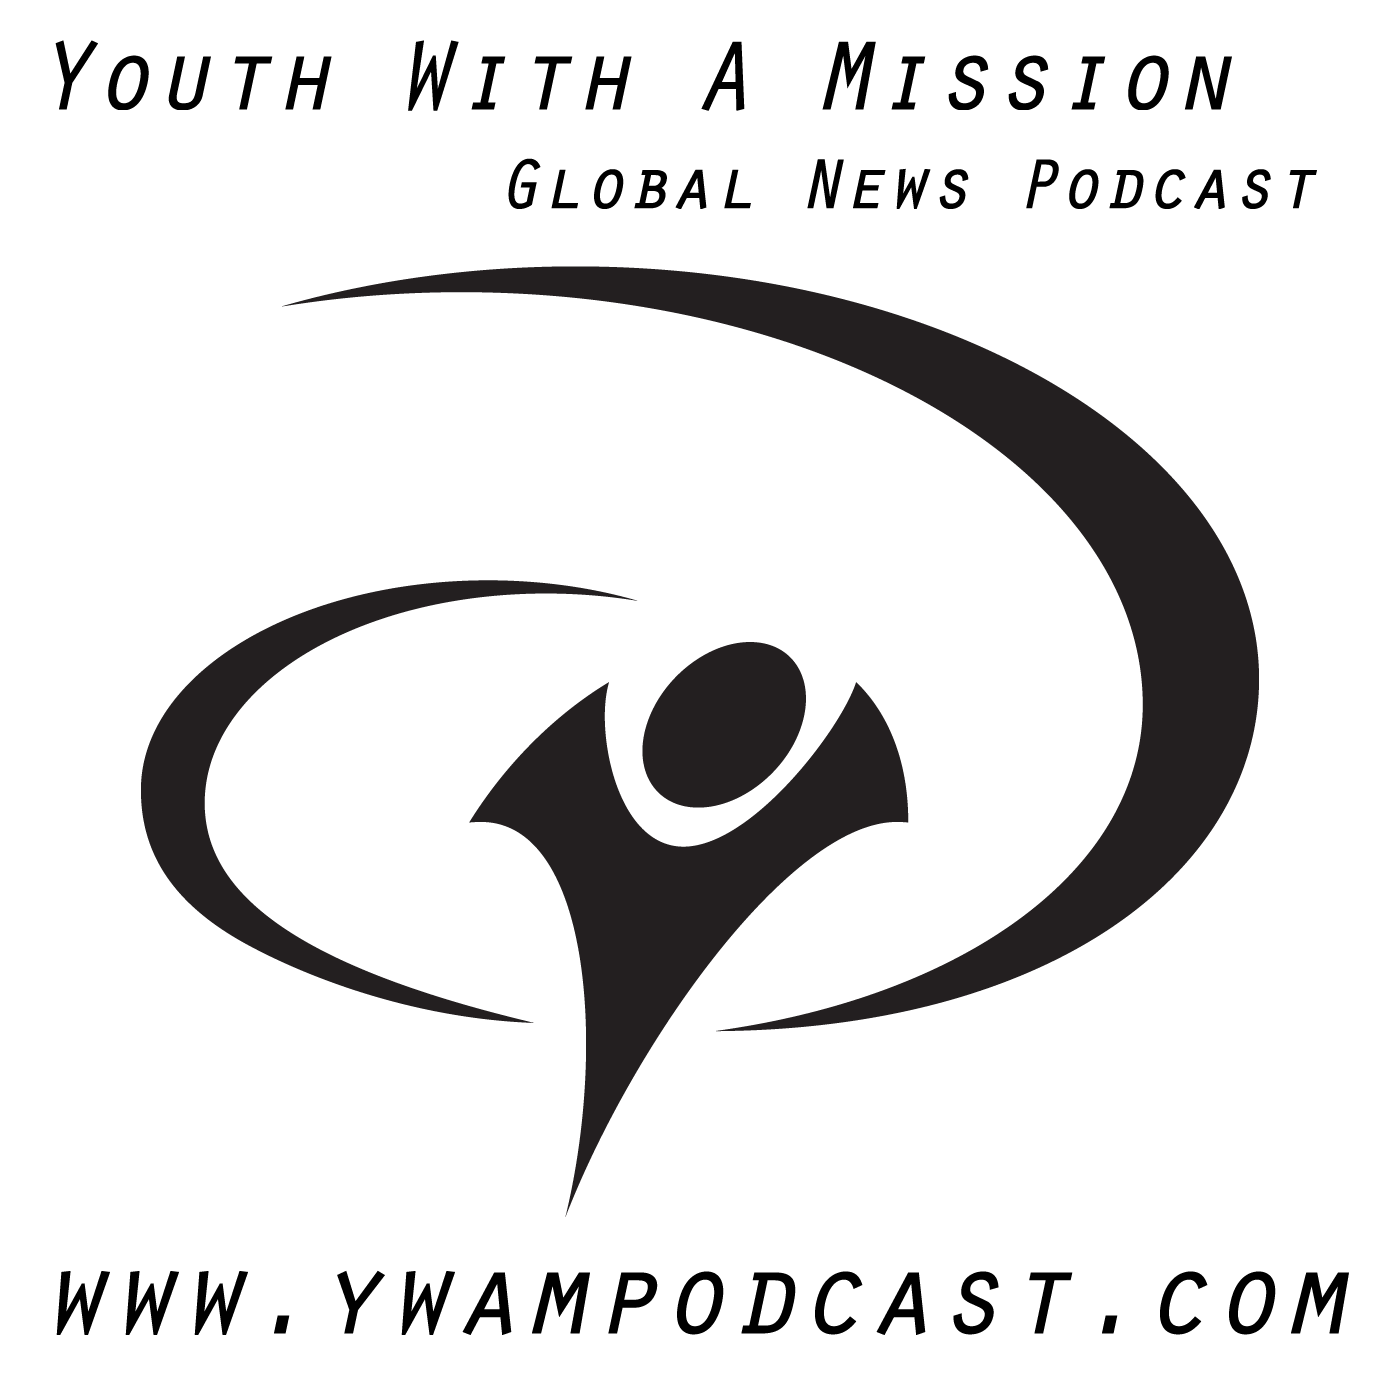 YWAM News Podcast